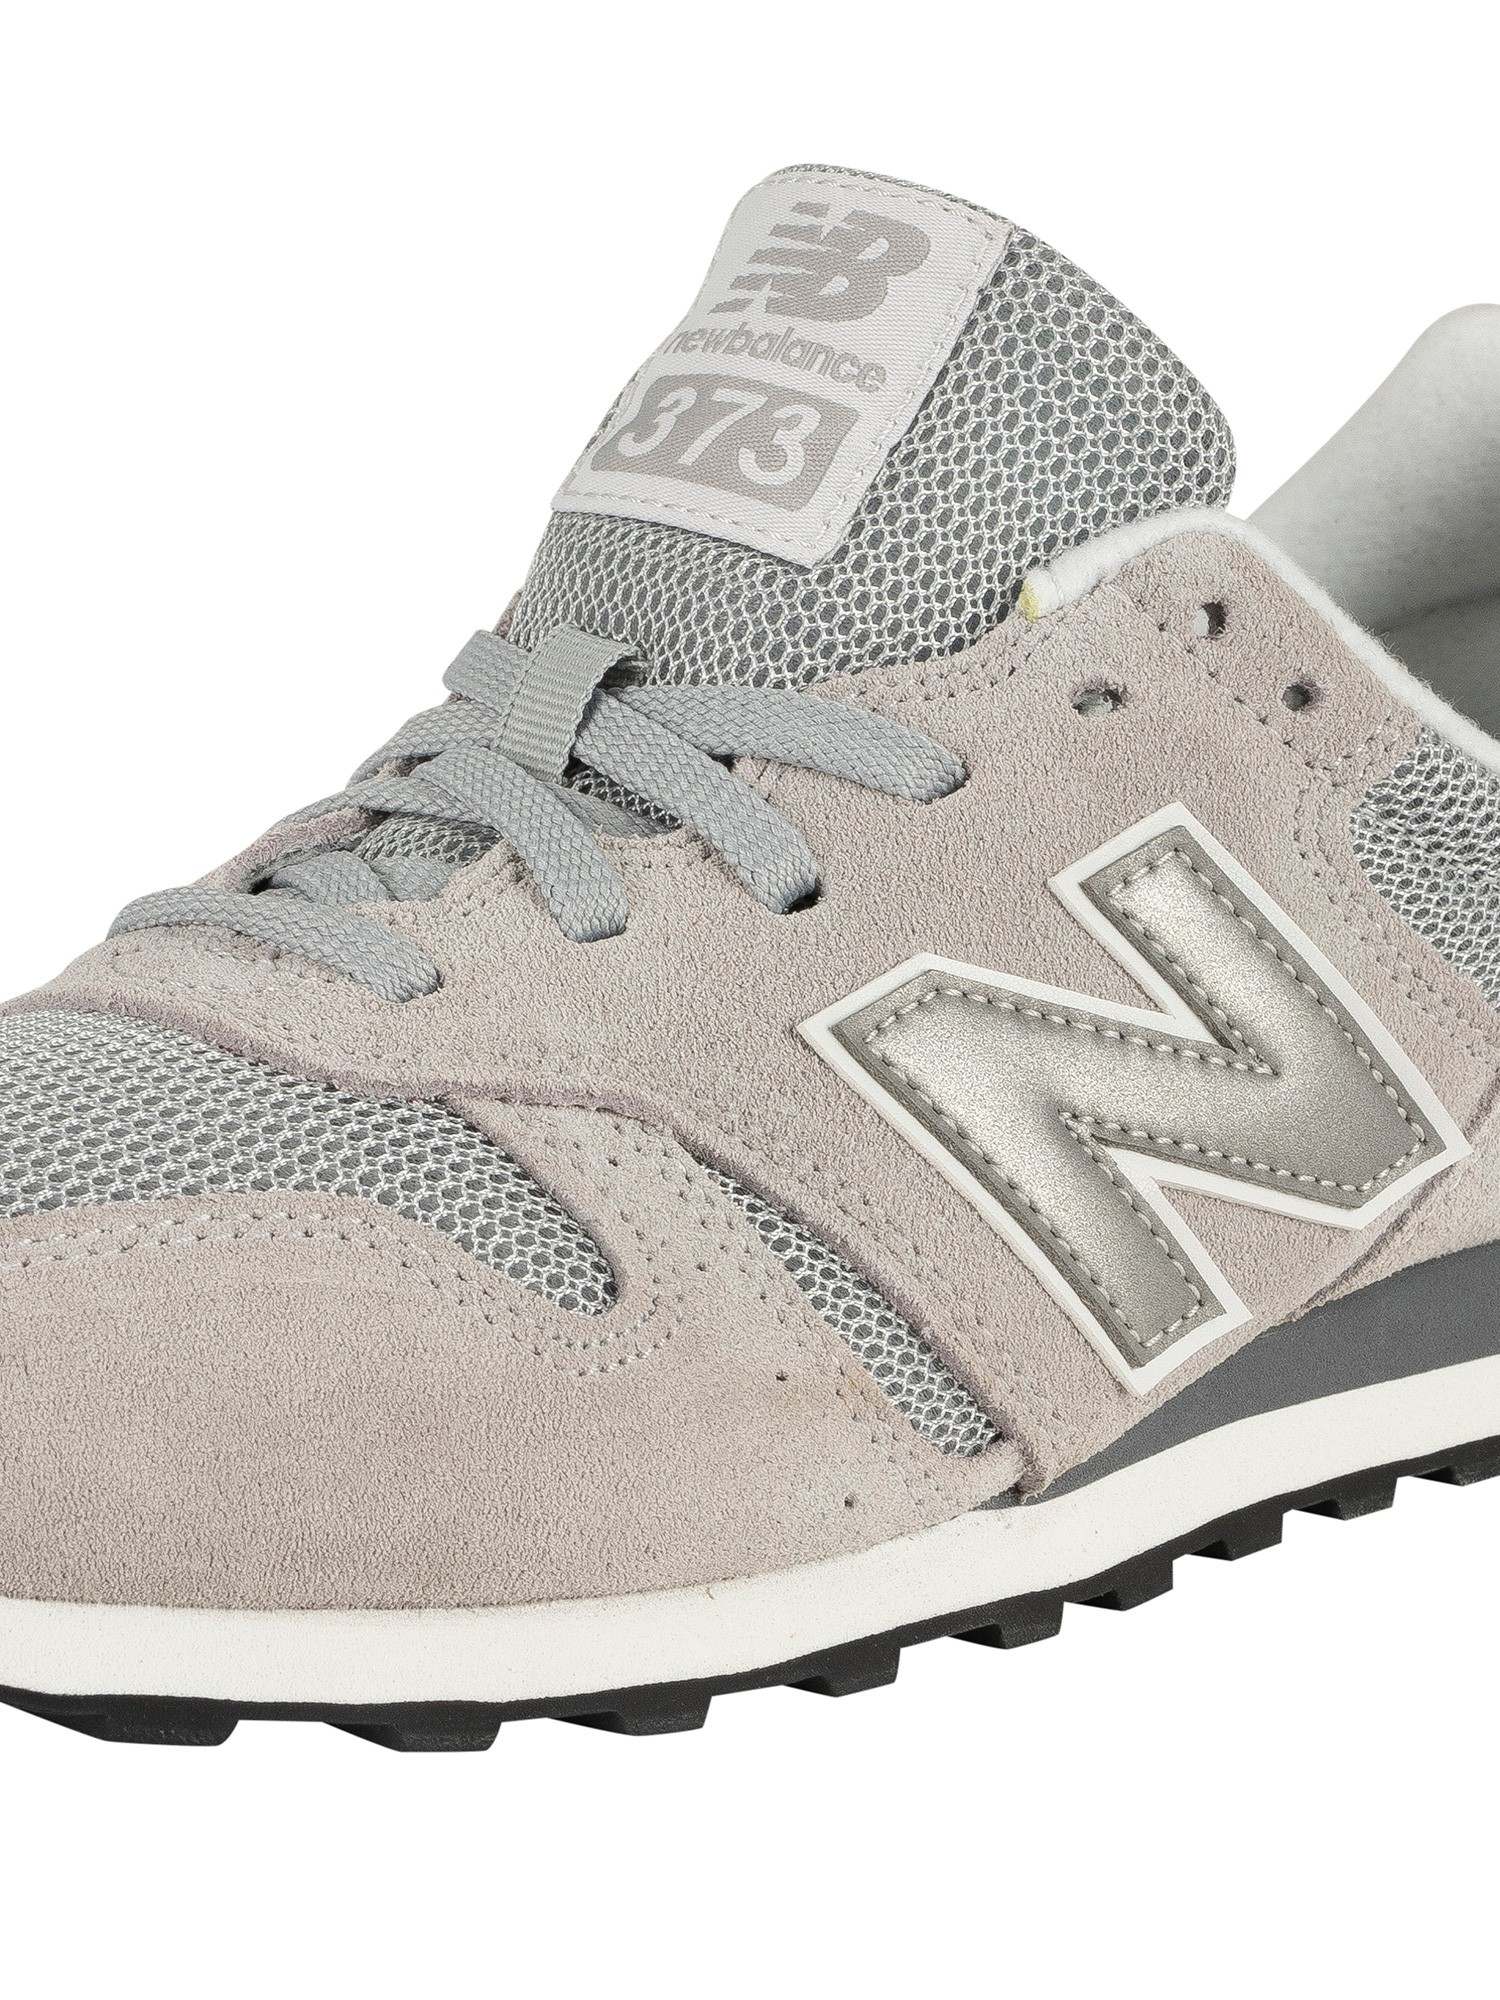 best service 0a9c9 149e4 New Balance 373 Suede Trainers - Grey/Silver